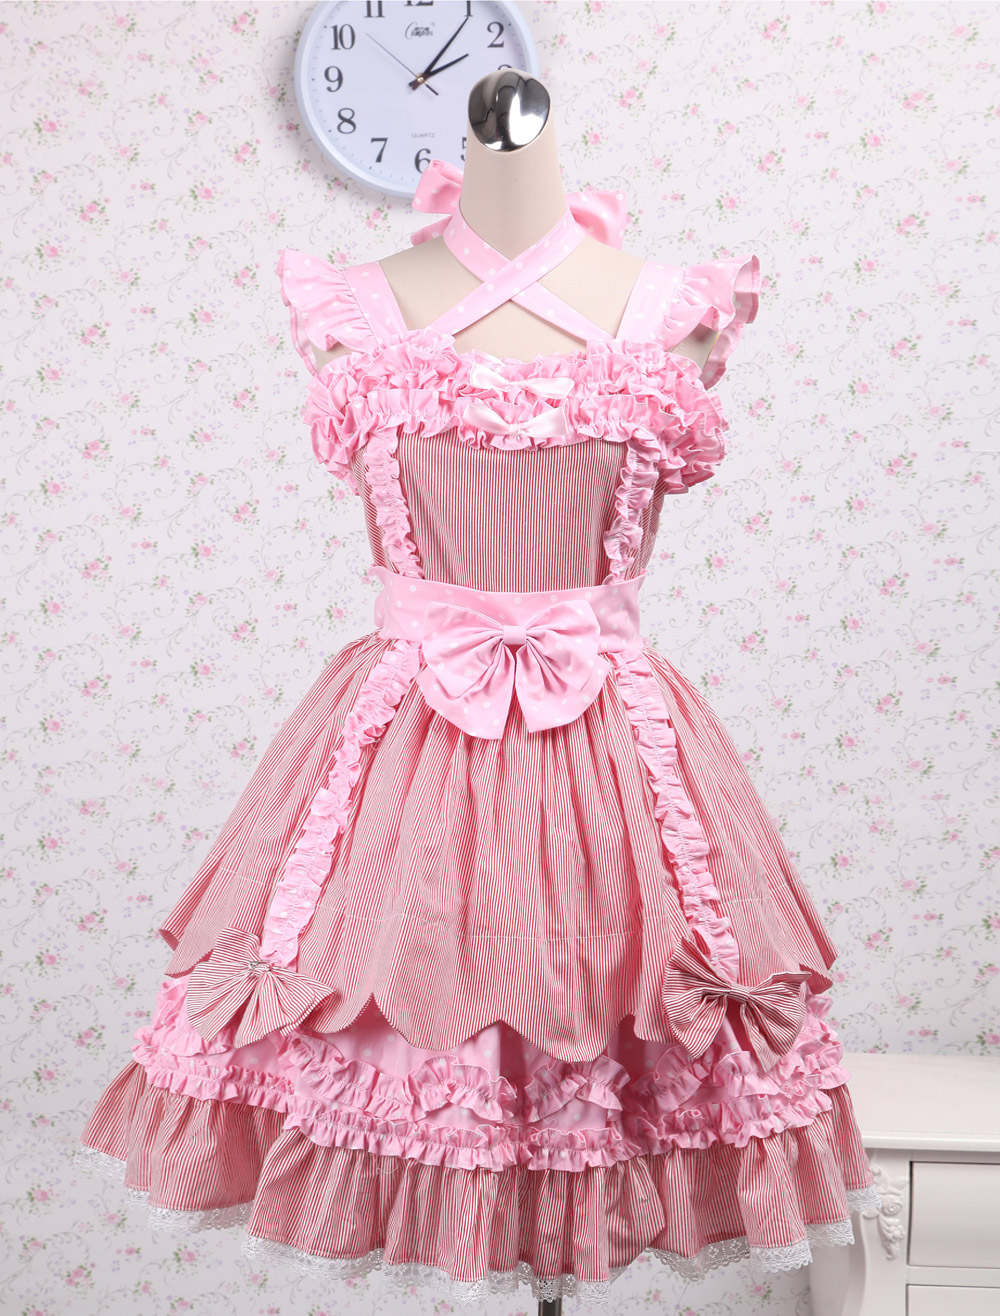 DevilInspired Lolita Clothing: How To Choose Your Suitable